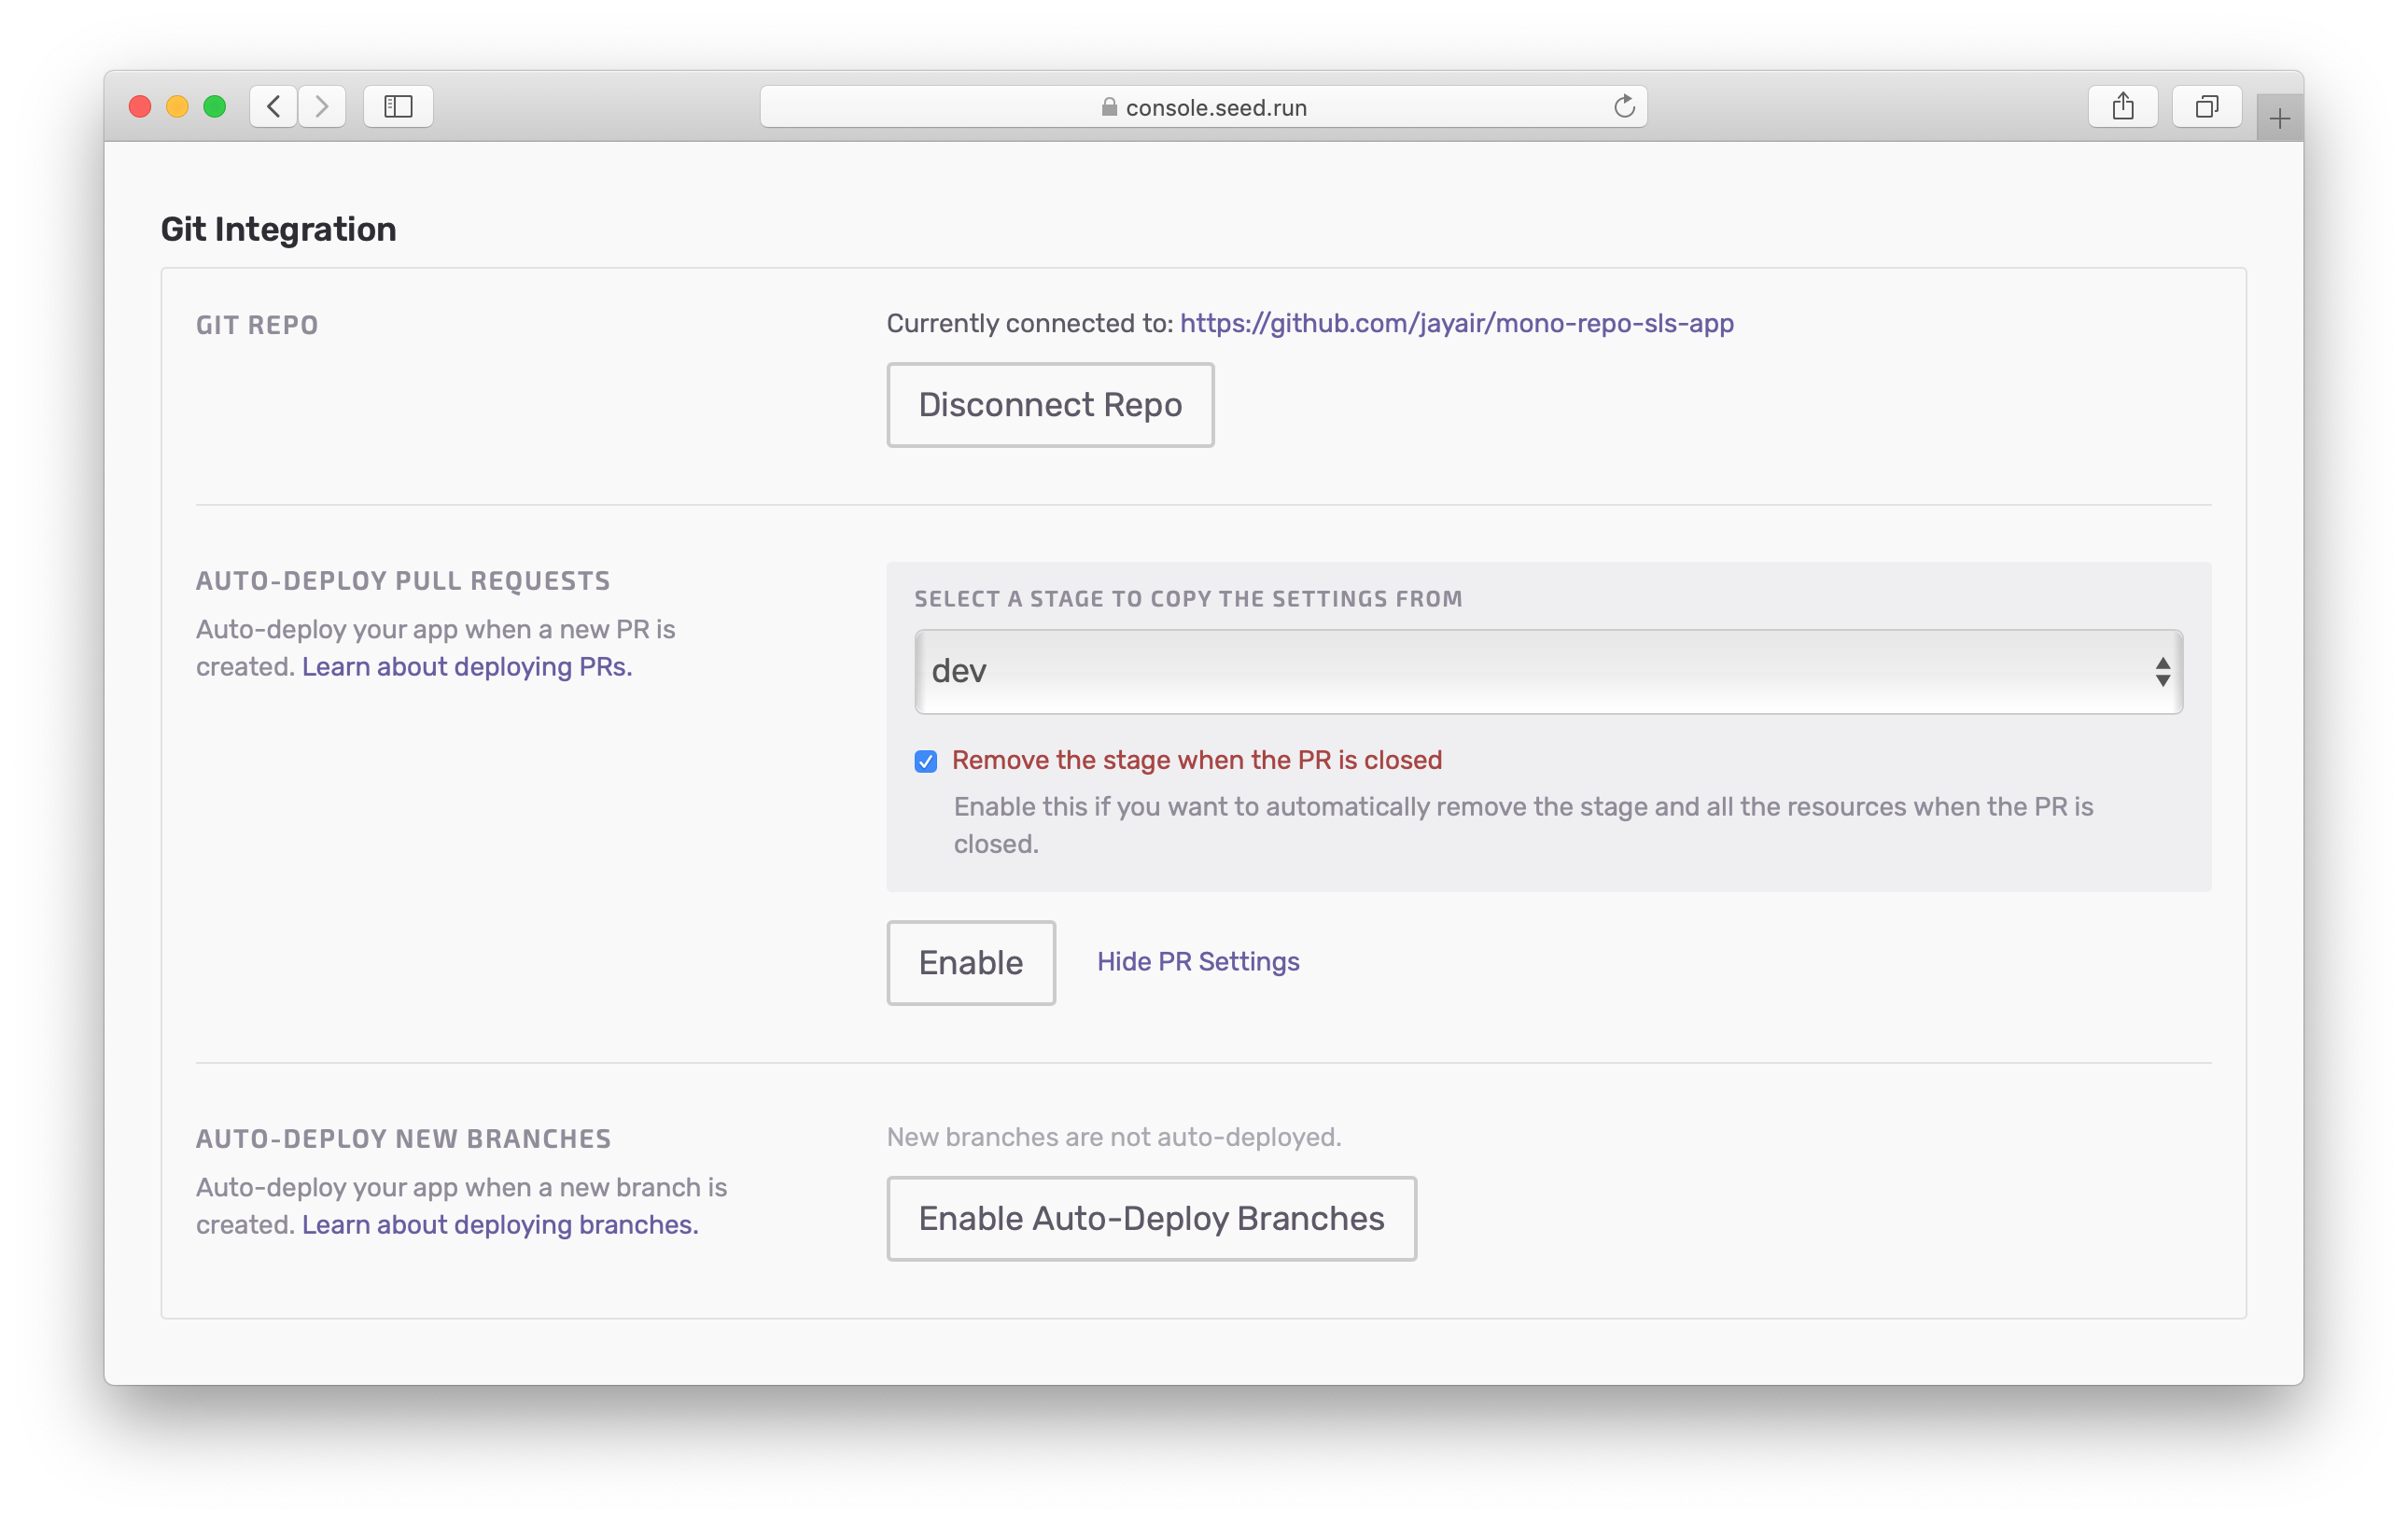 New auto-deploy pull request setting